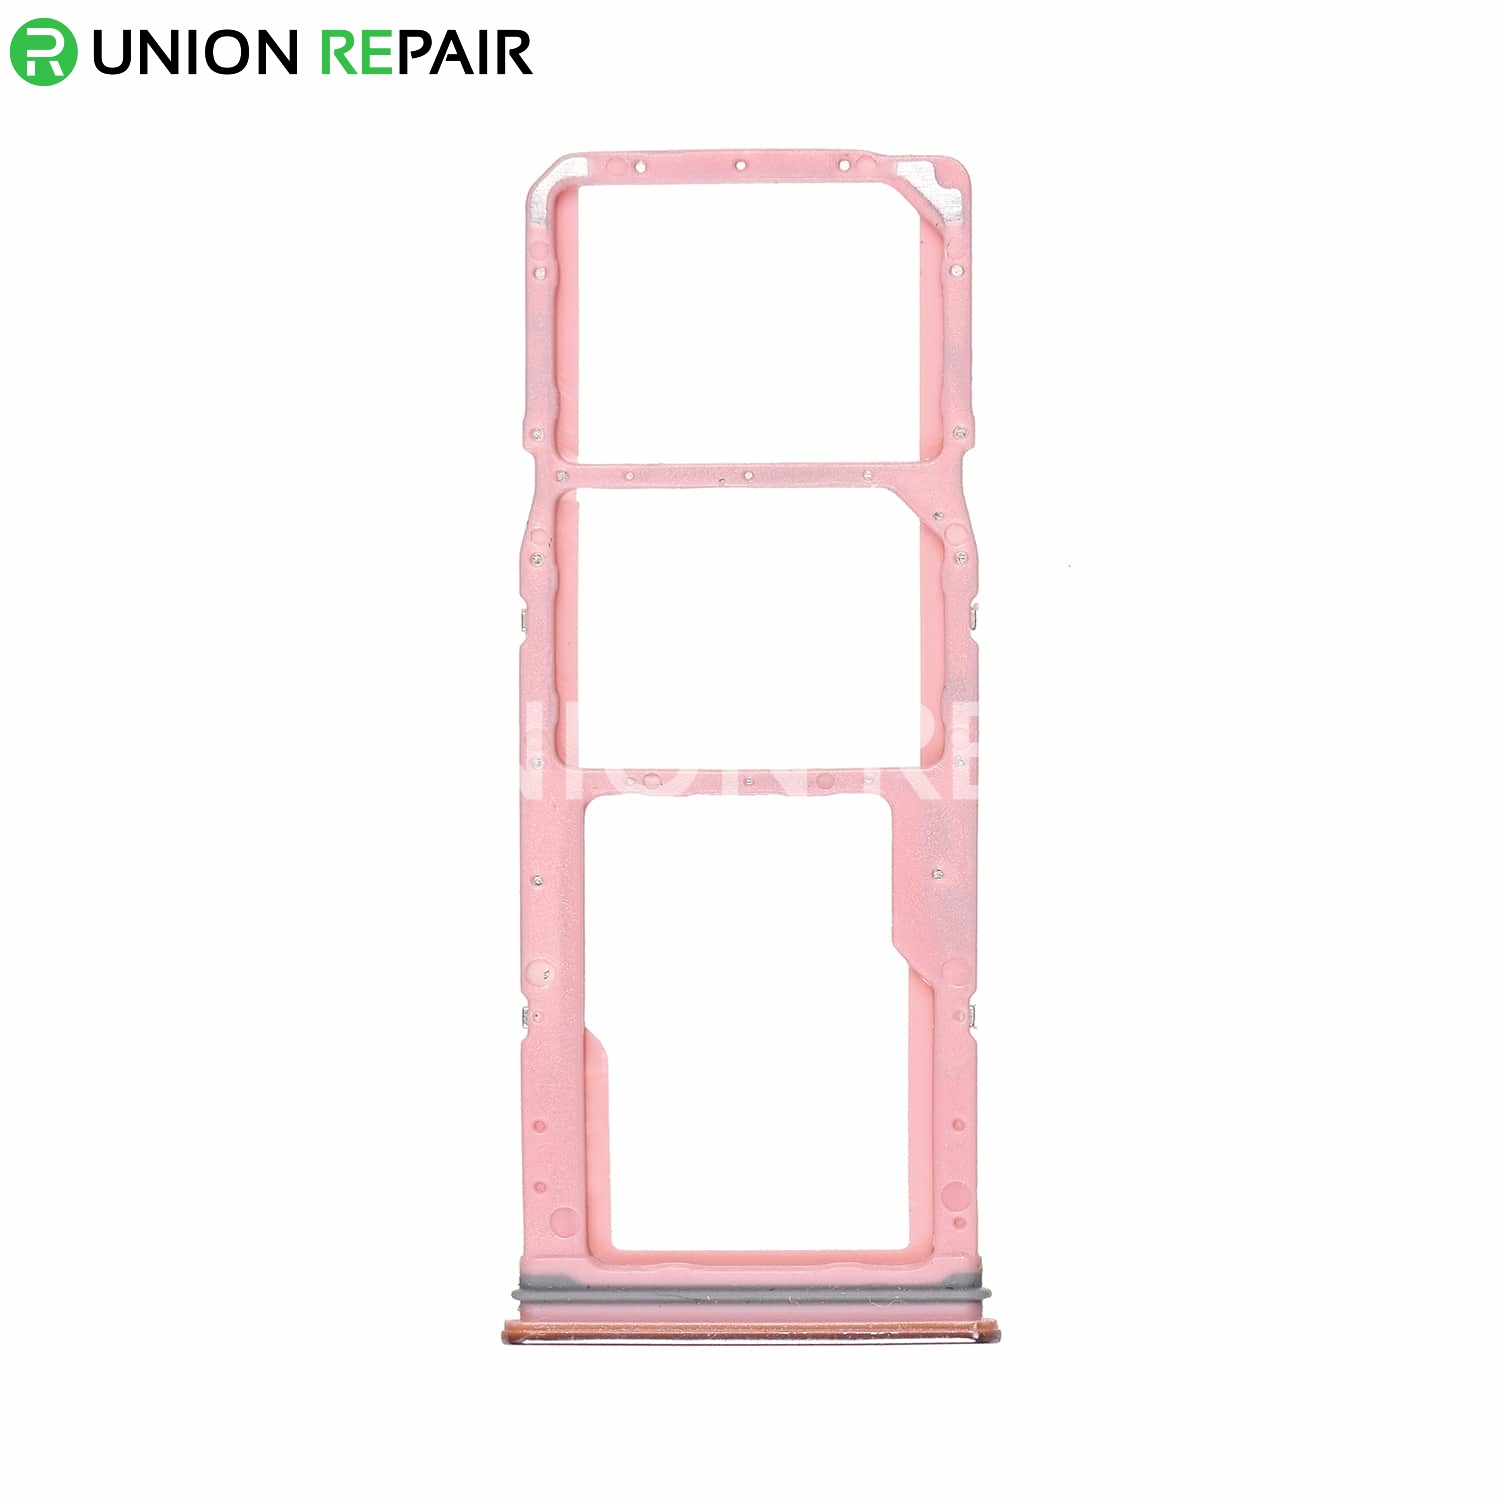 Replacement for Samsung Galaxy A7 (2018) SM-750 SIM Card Tray - Pink